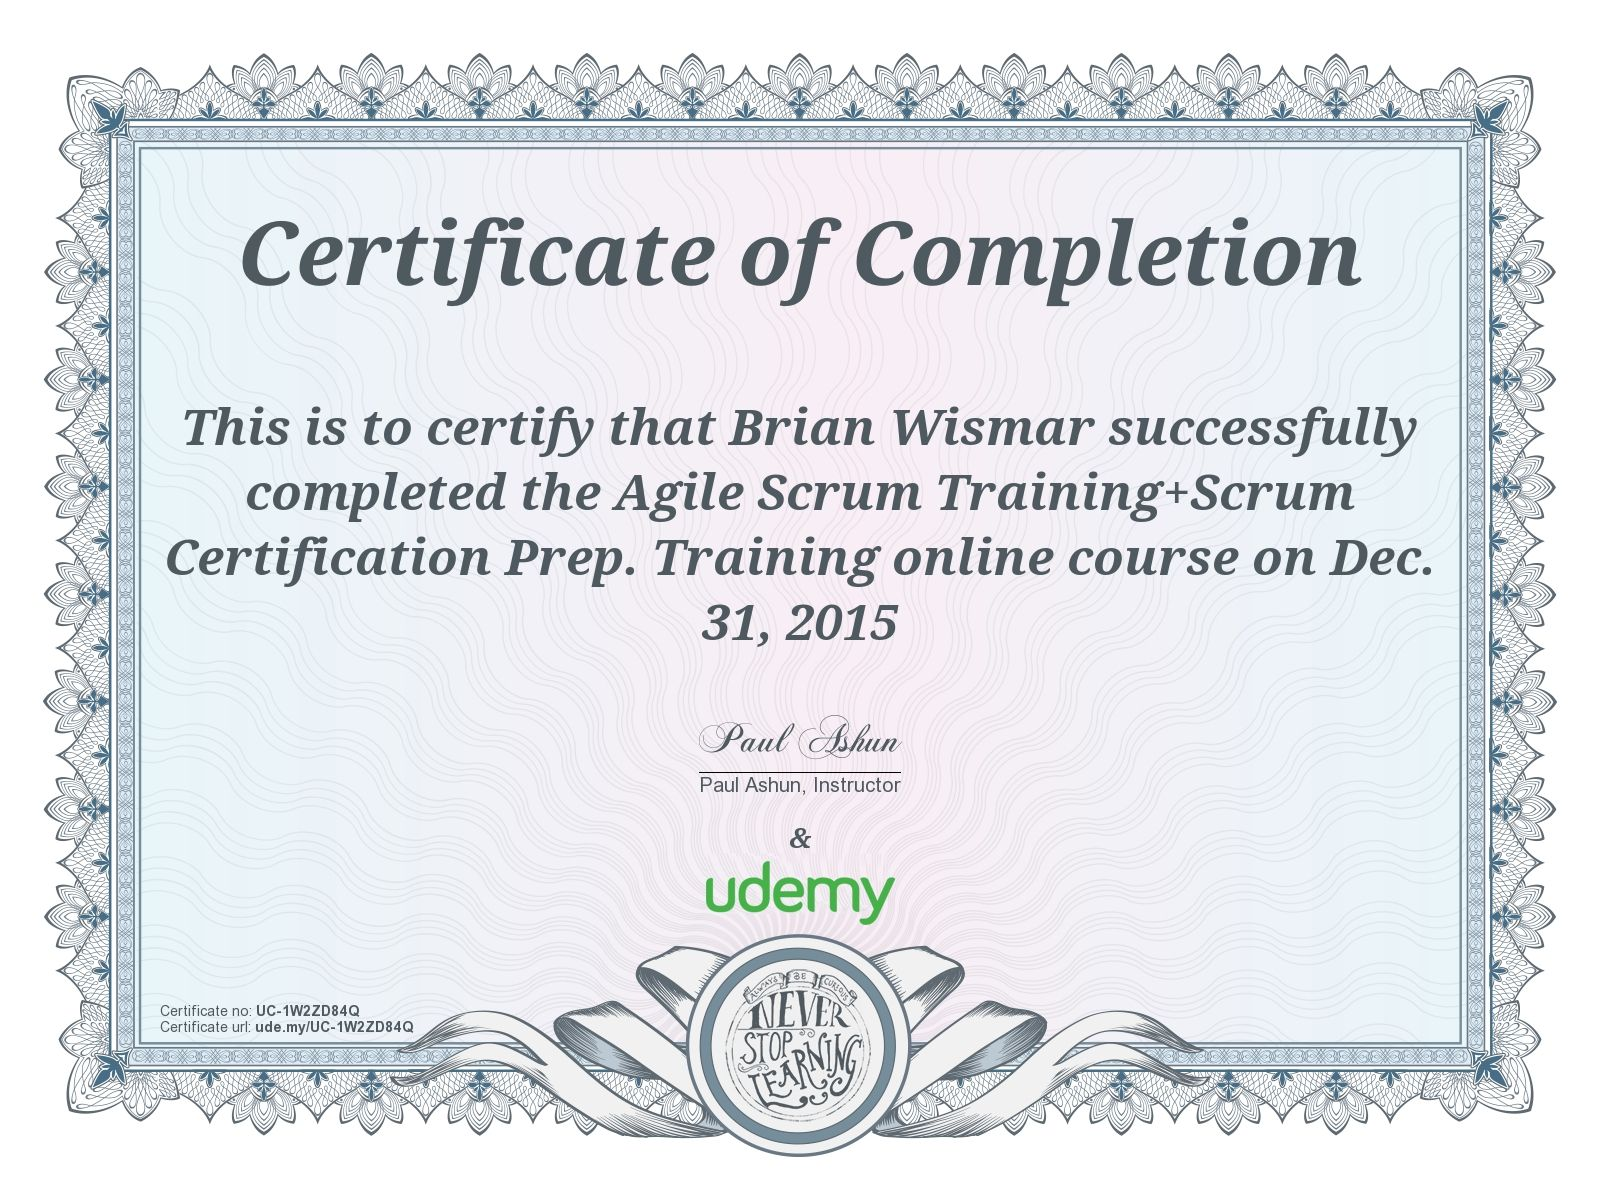 Completion Certificate For Agile Scrum Training Scrum